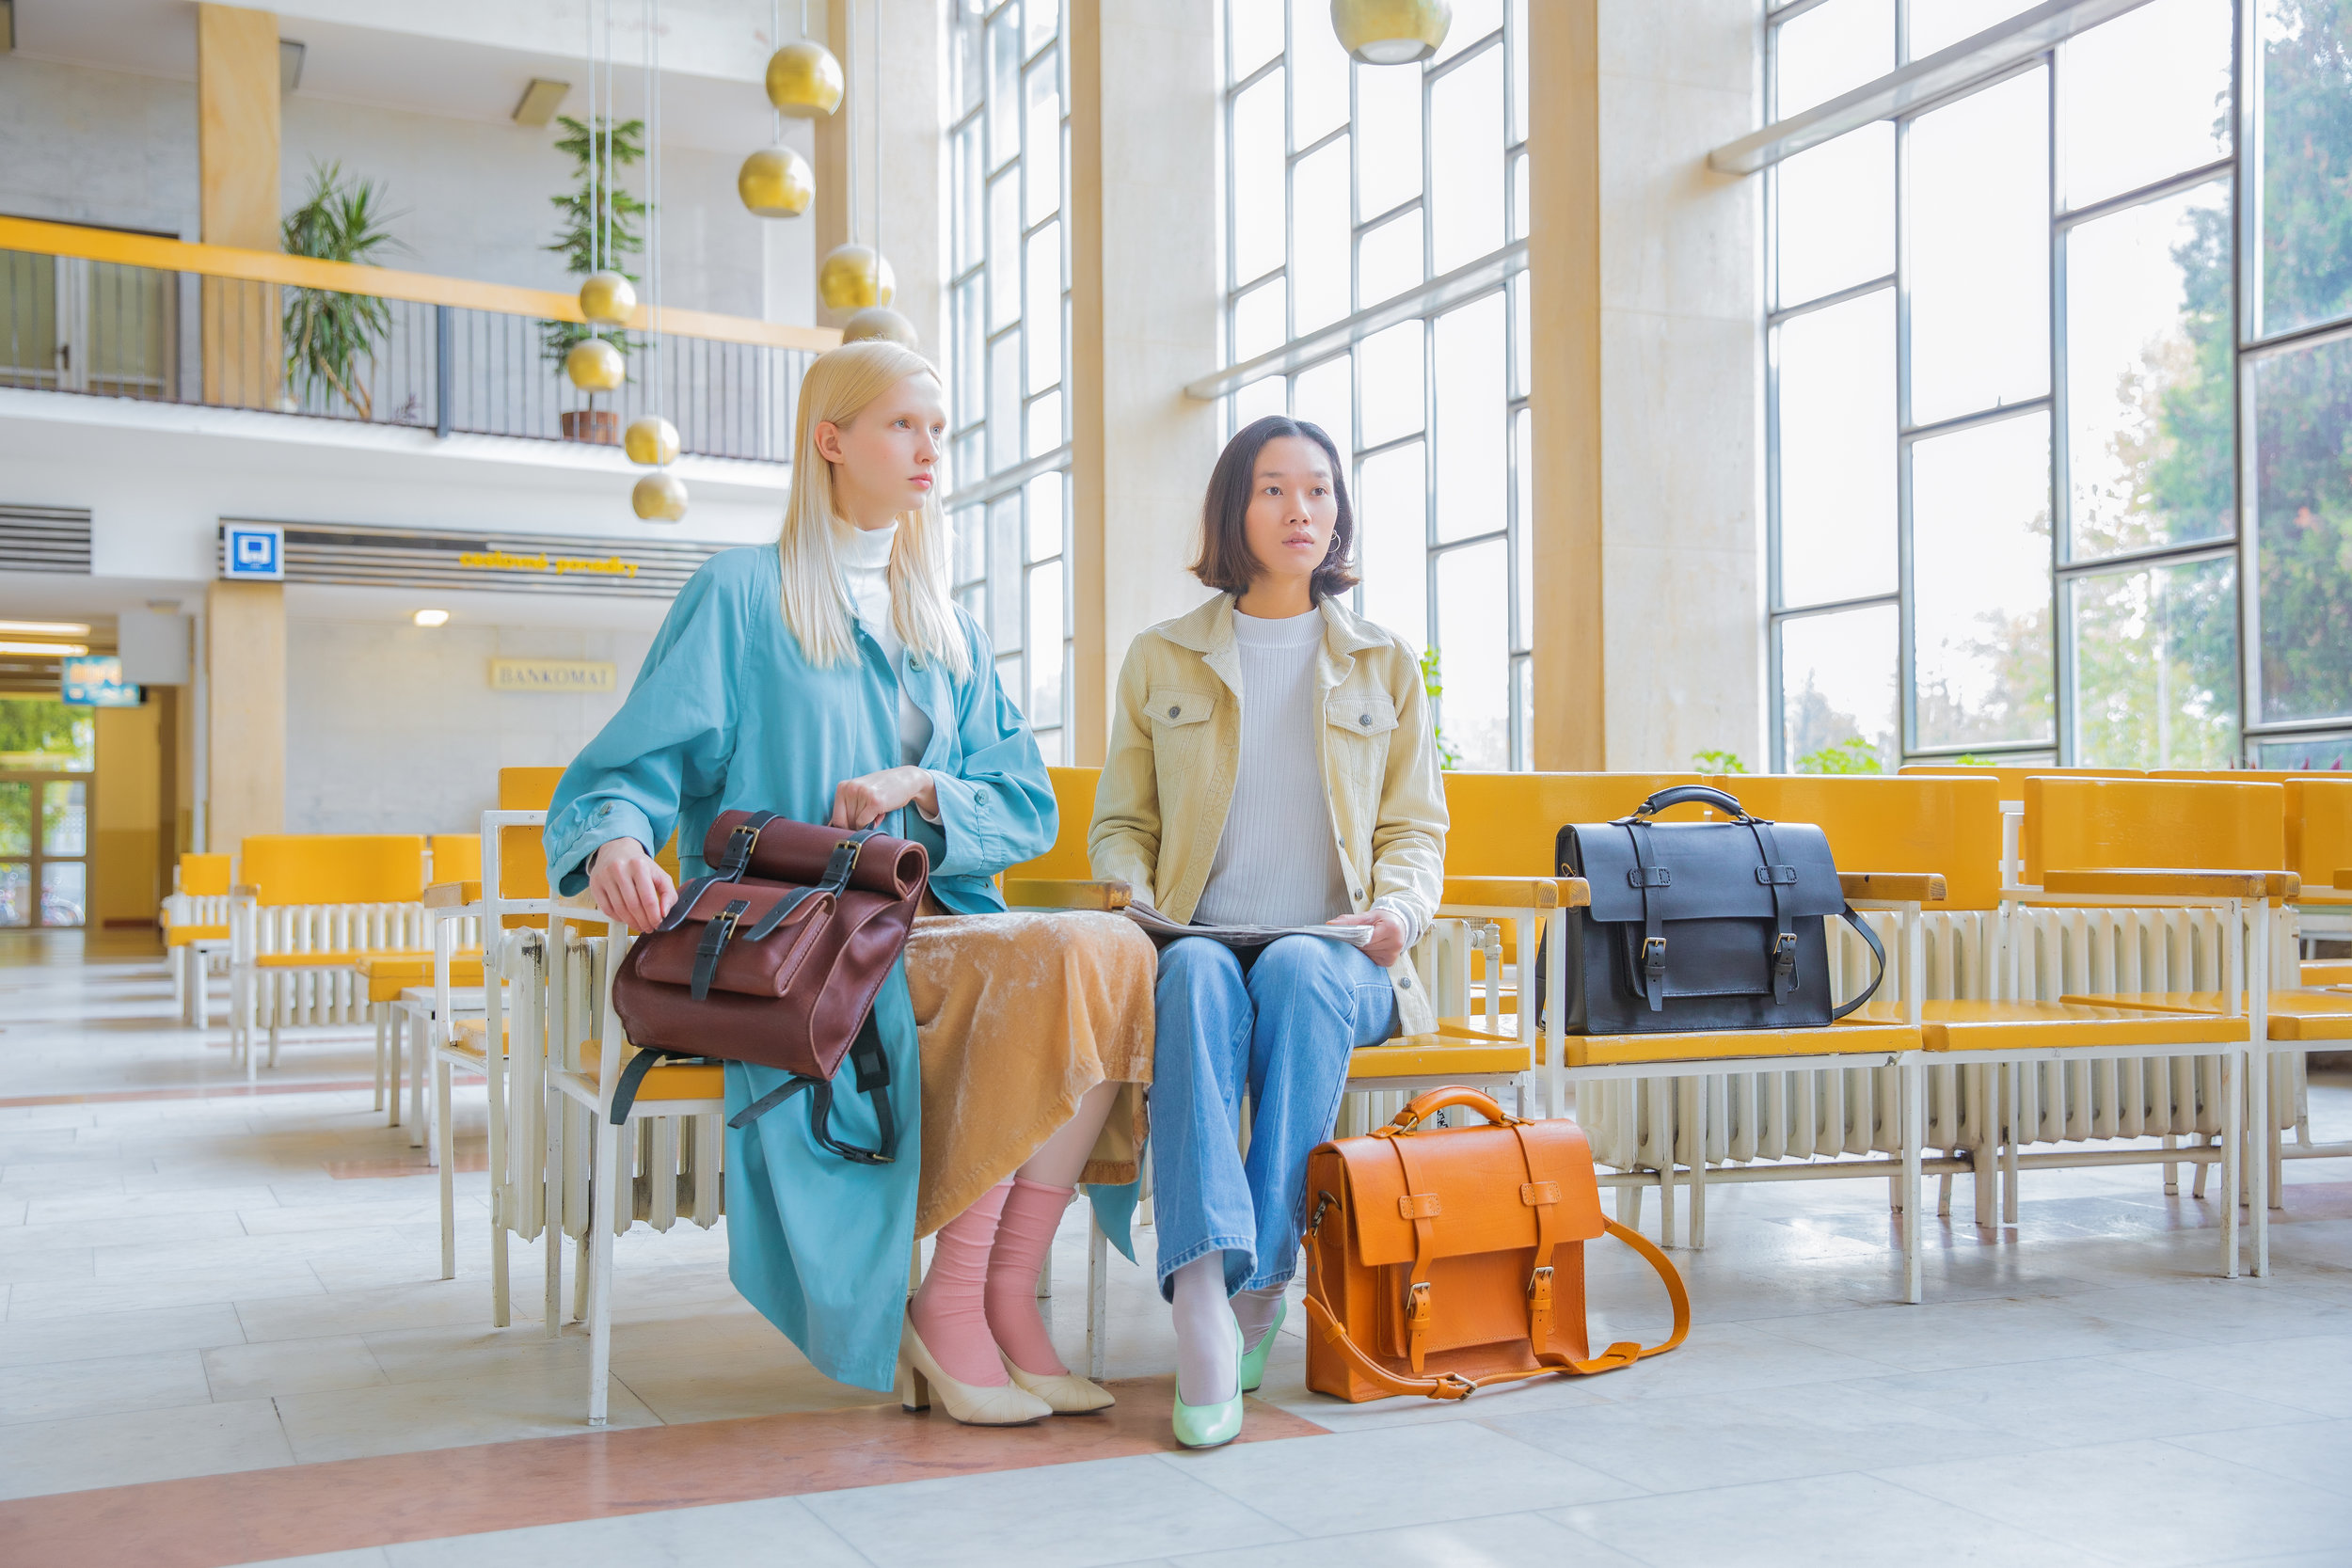 Mária Švarbová photo of girls with hand stitched leather bags